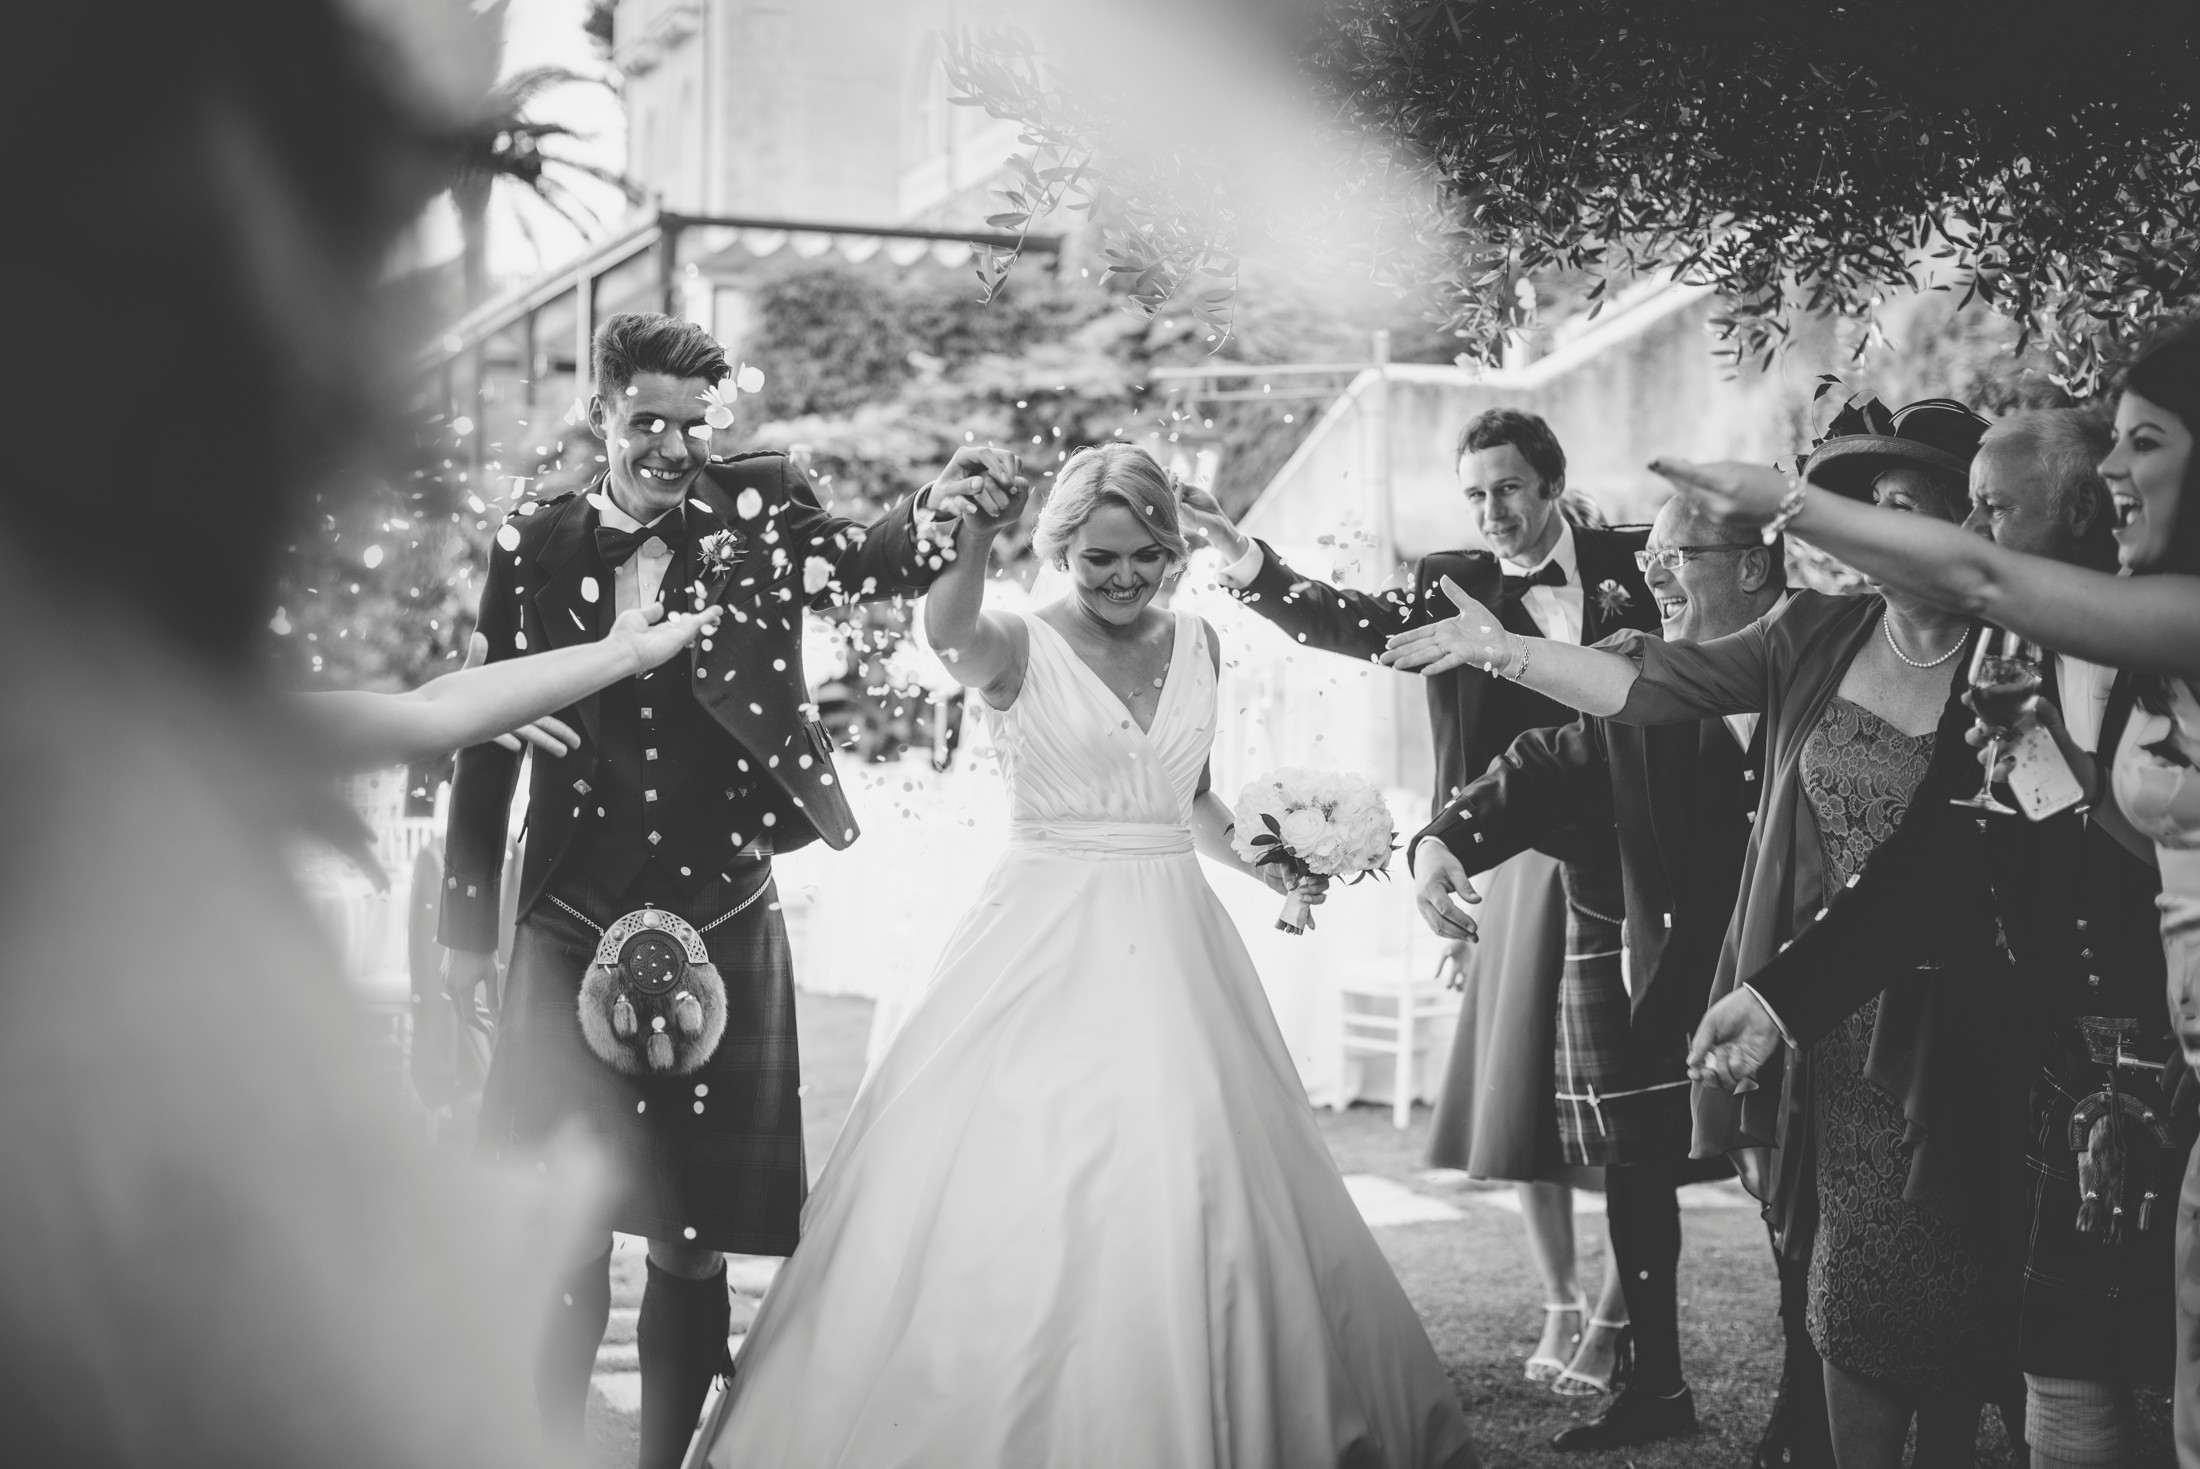 wedding guests throwing petals to the bride and the groom